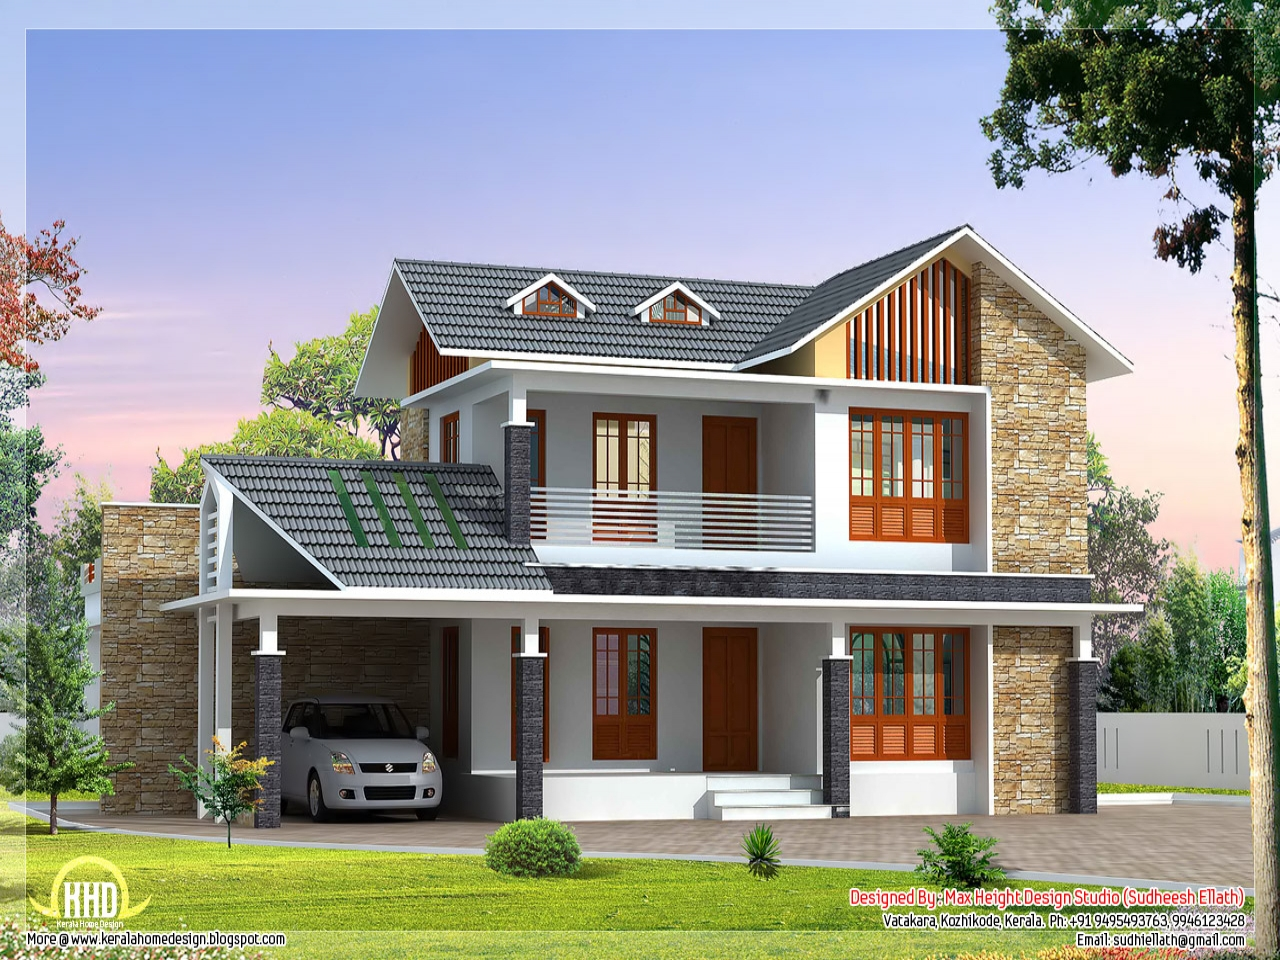 Beautiful villa house designs modern villa design housing for Villa plans and designs